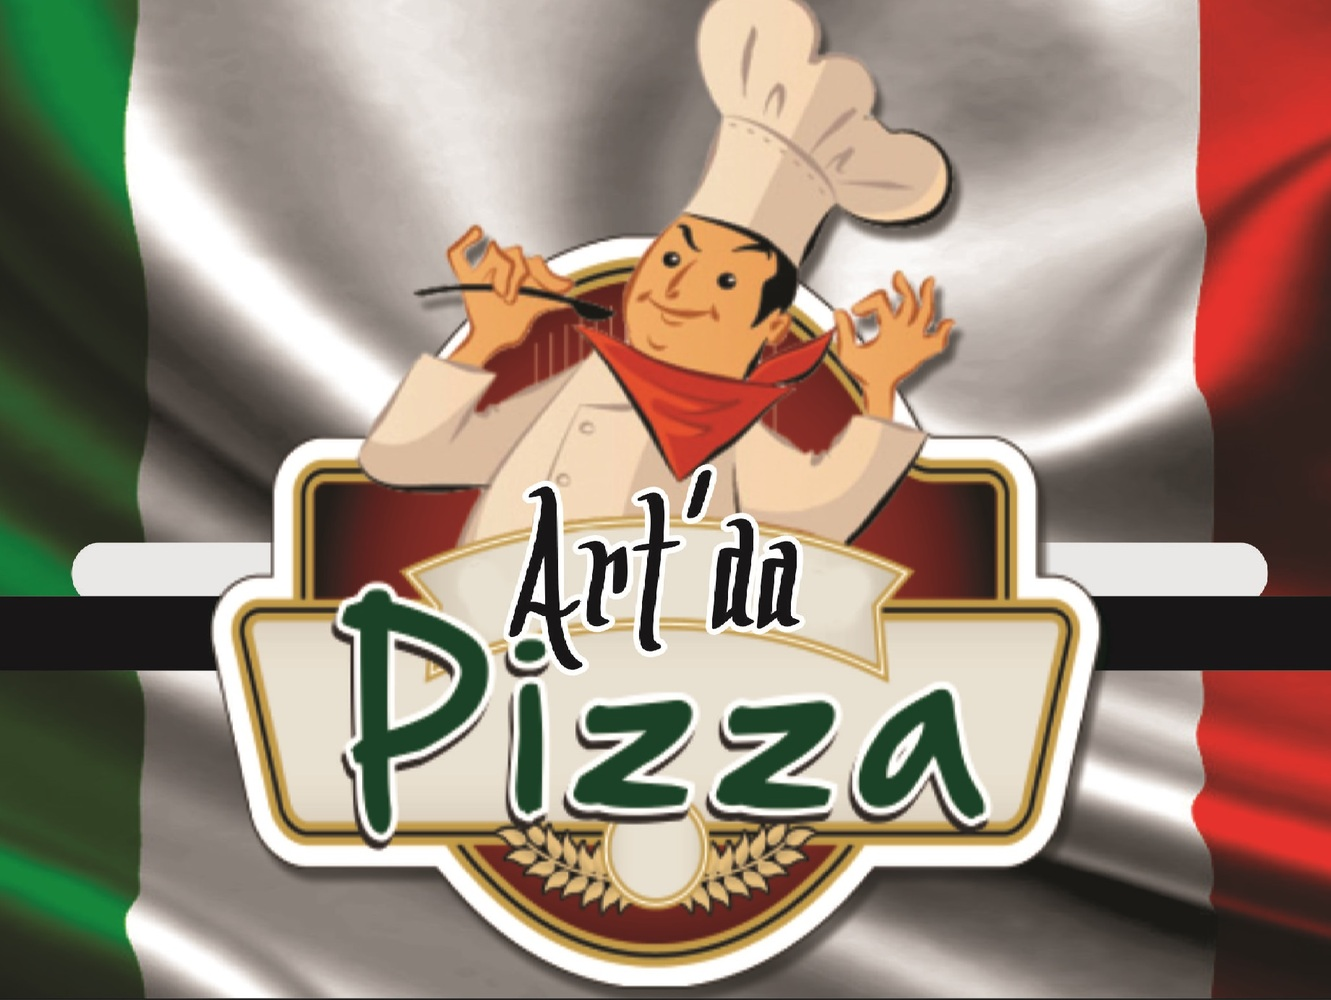 Art da Pizza Pizzaria